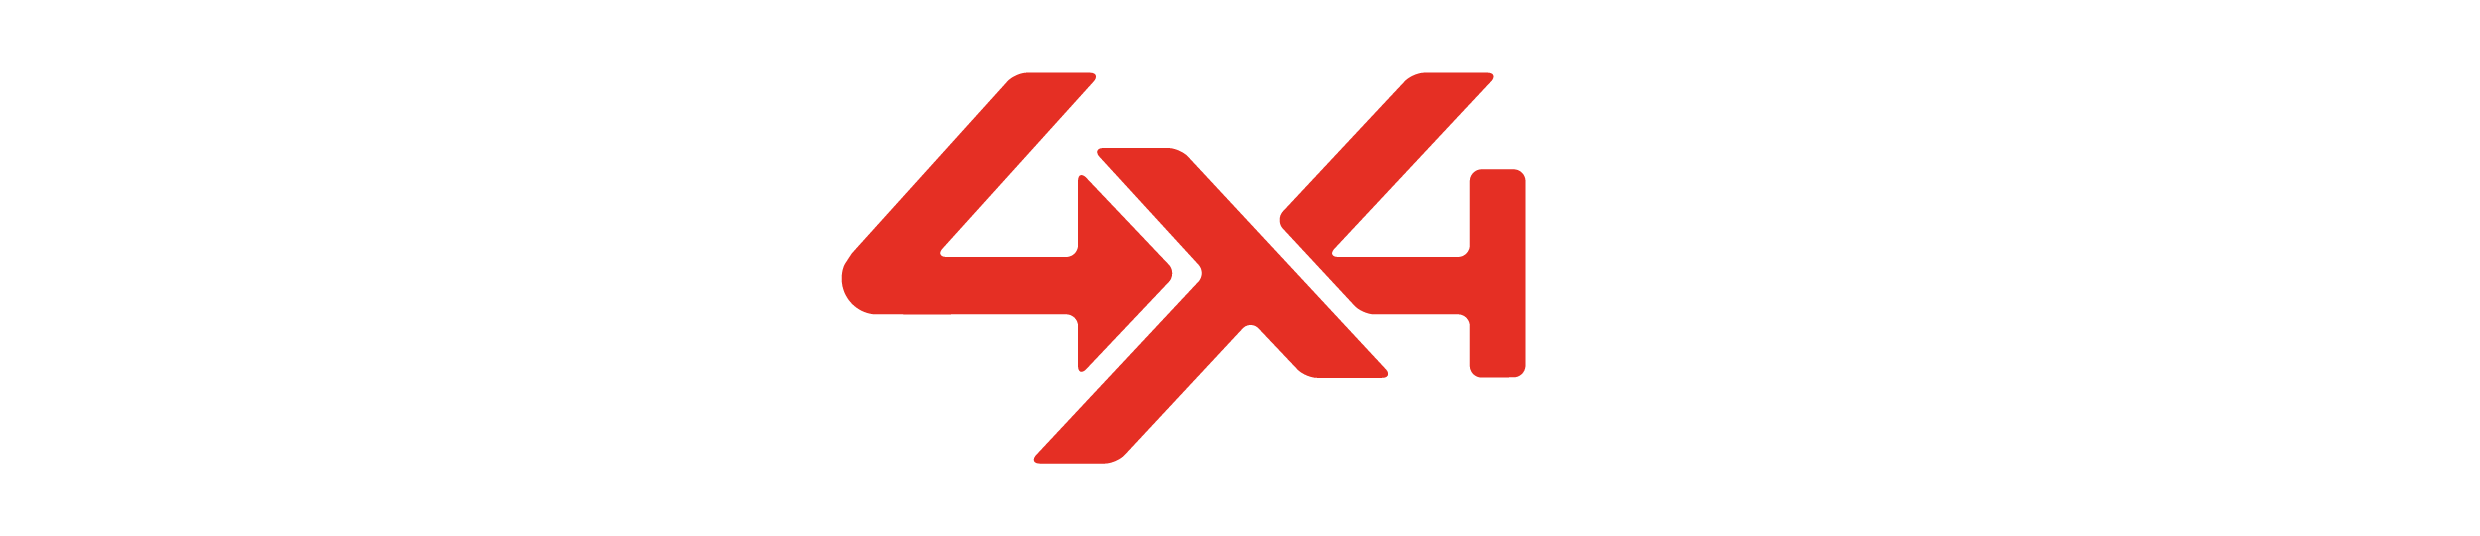 logo_euro4x4partsNew.png